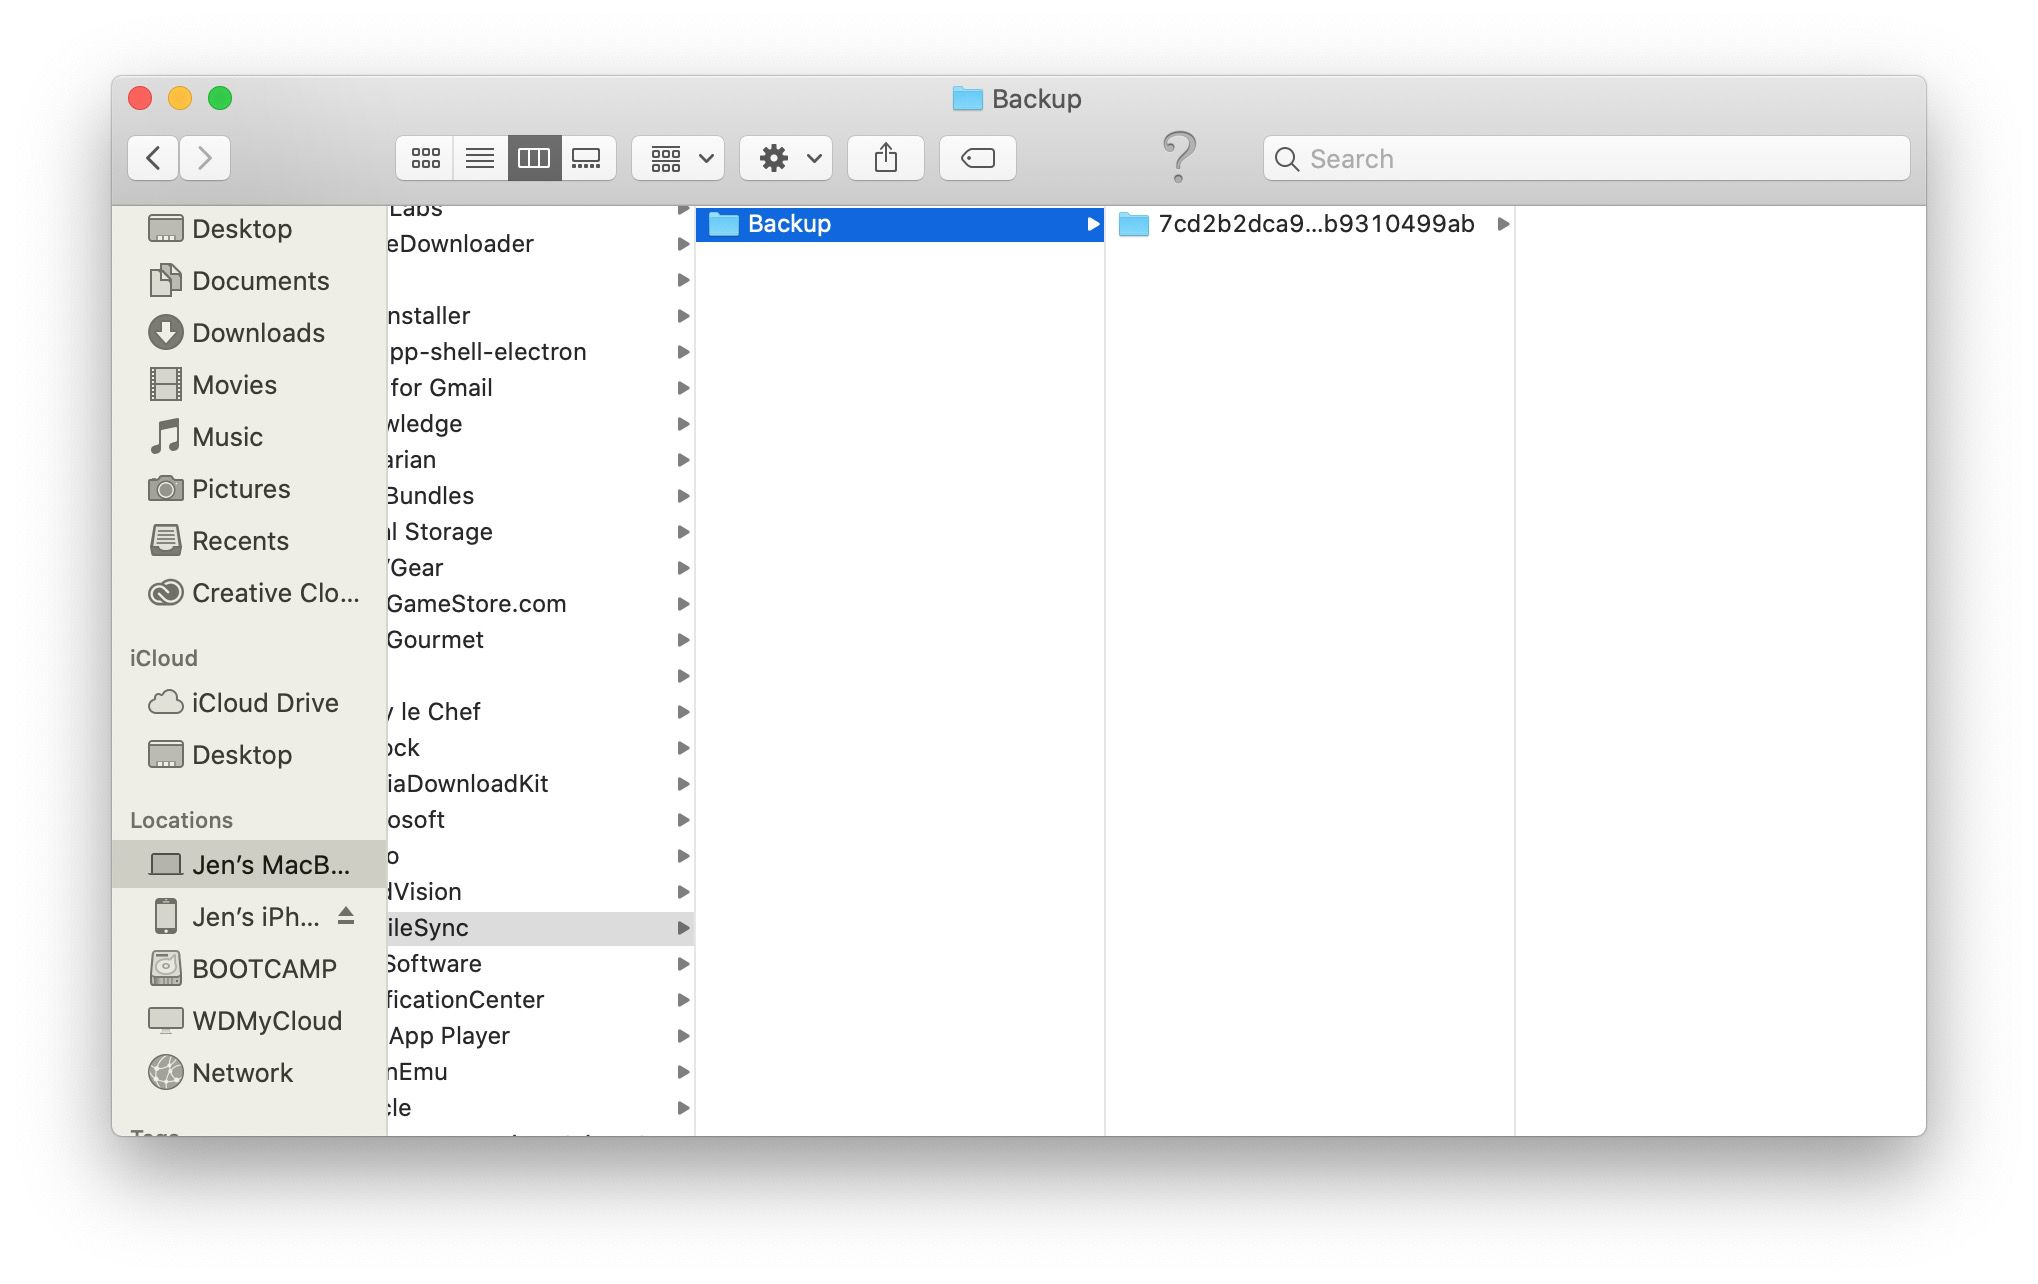 MacOS Finder window with iPhone backup location highlighted